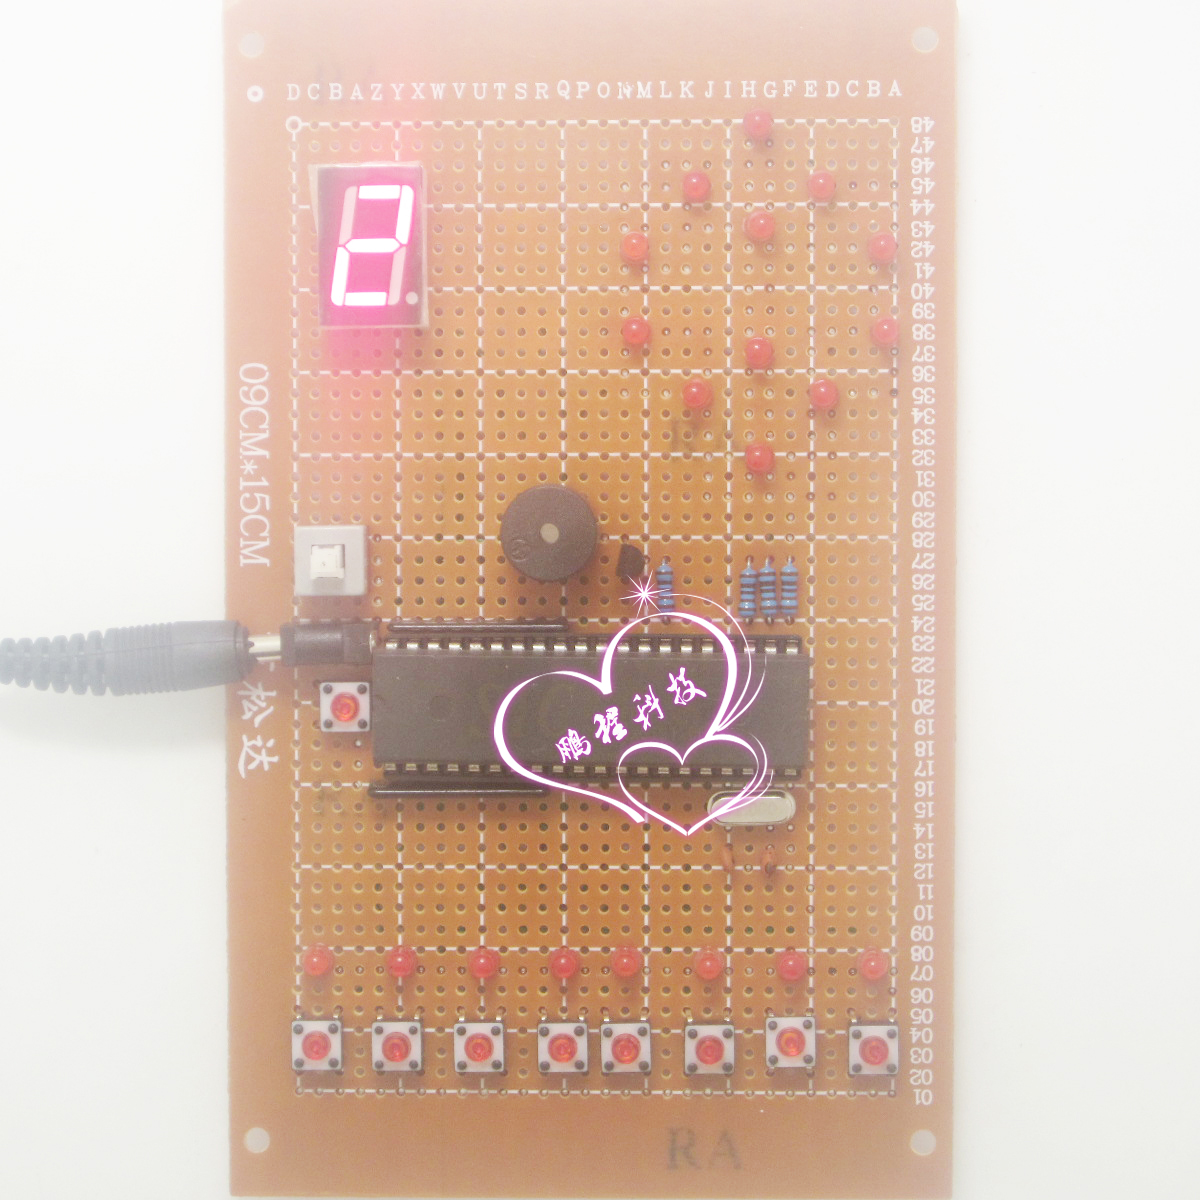 Design of elevator eight level elevator electronic design based on 51 single chip microcomputer